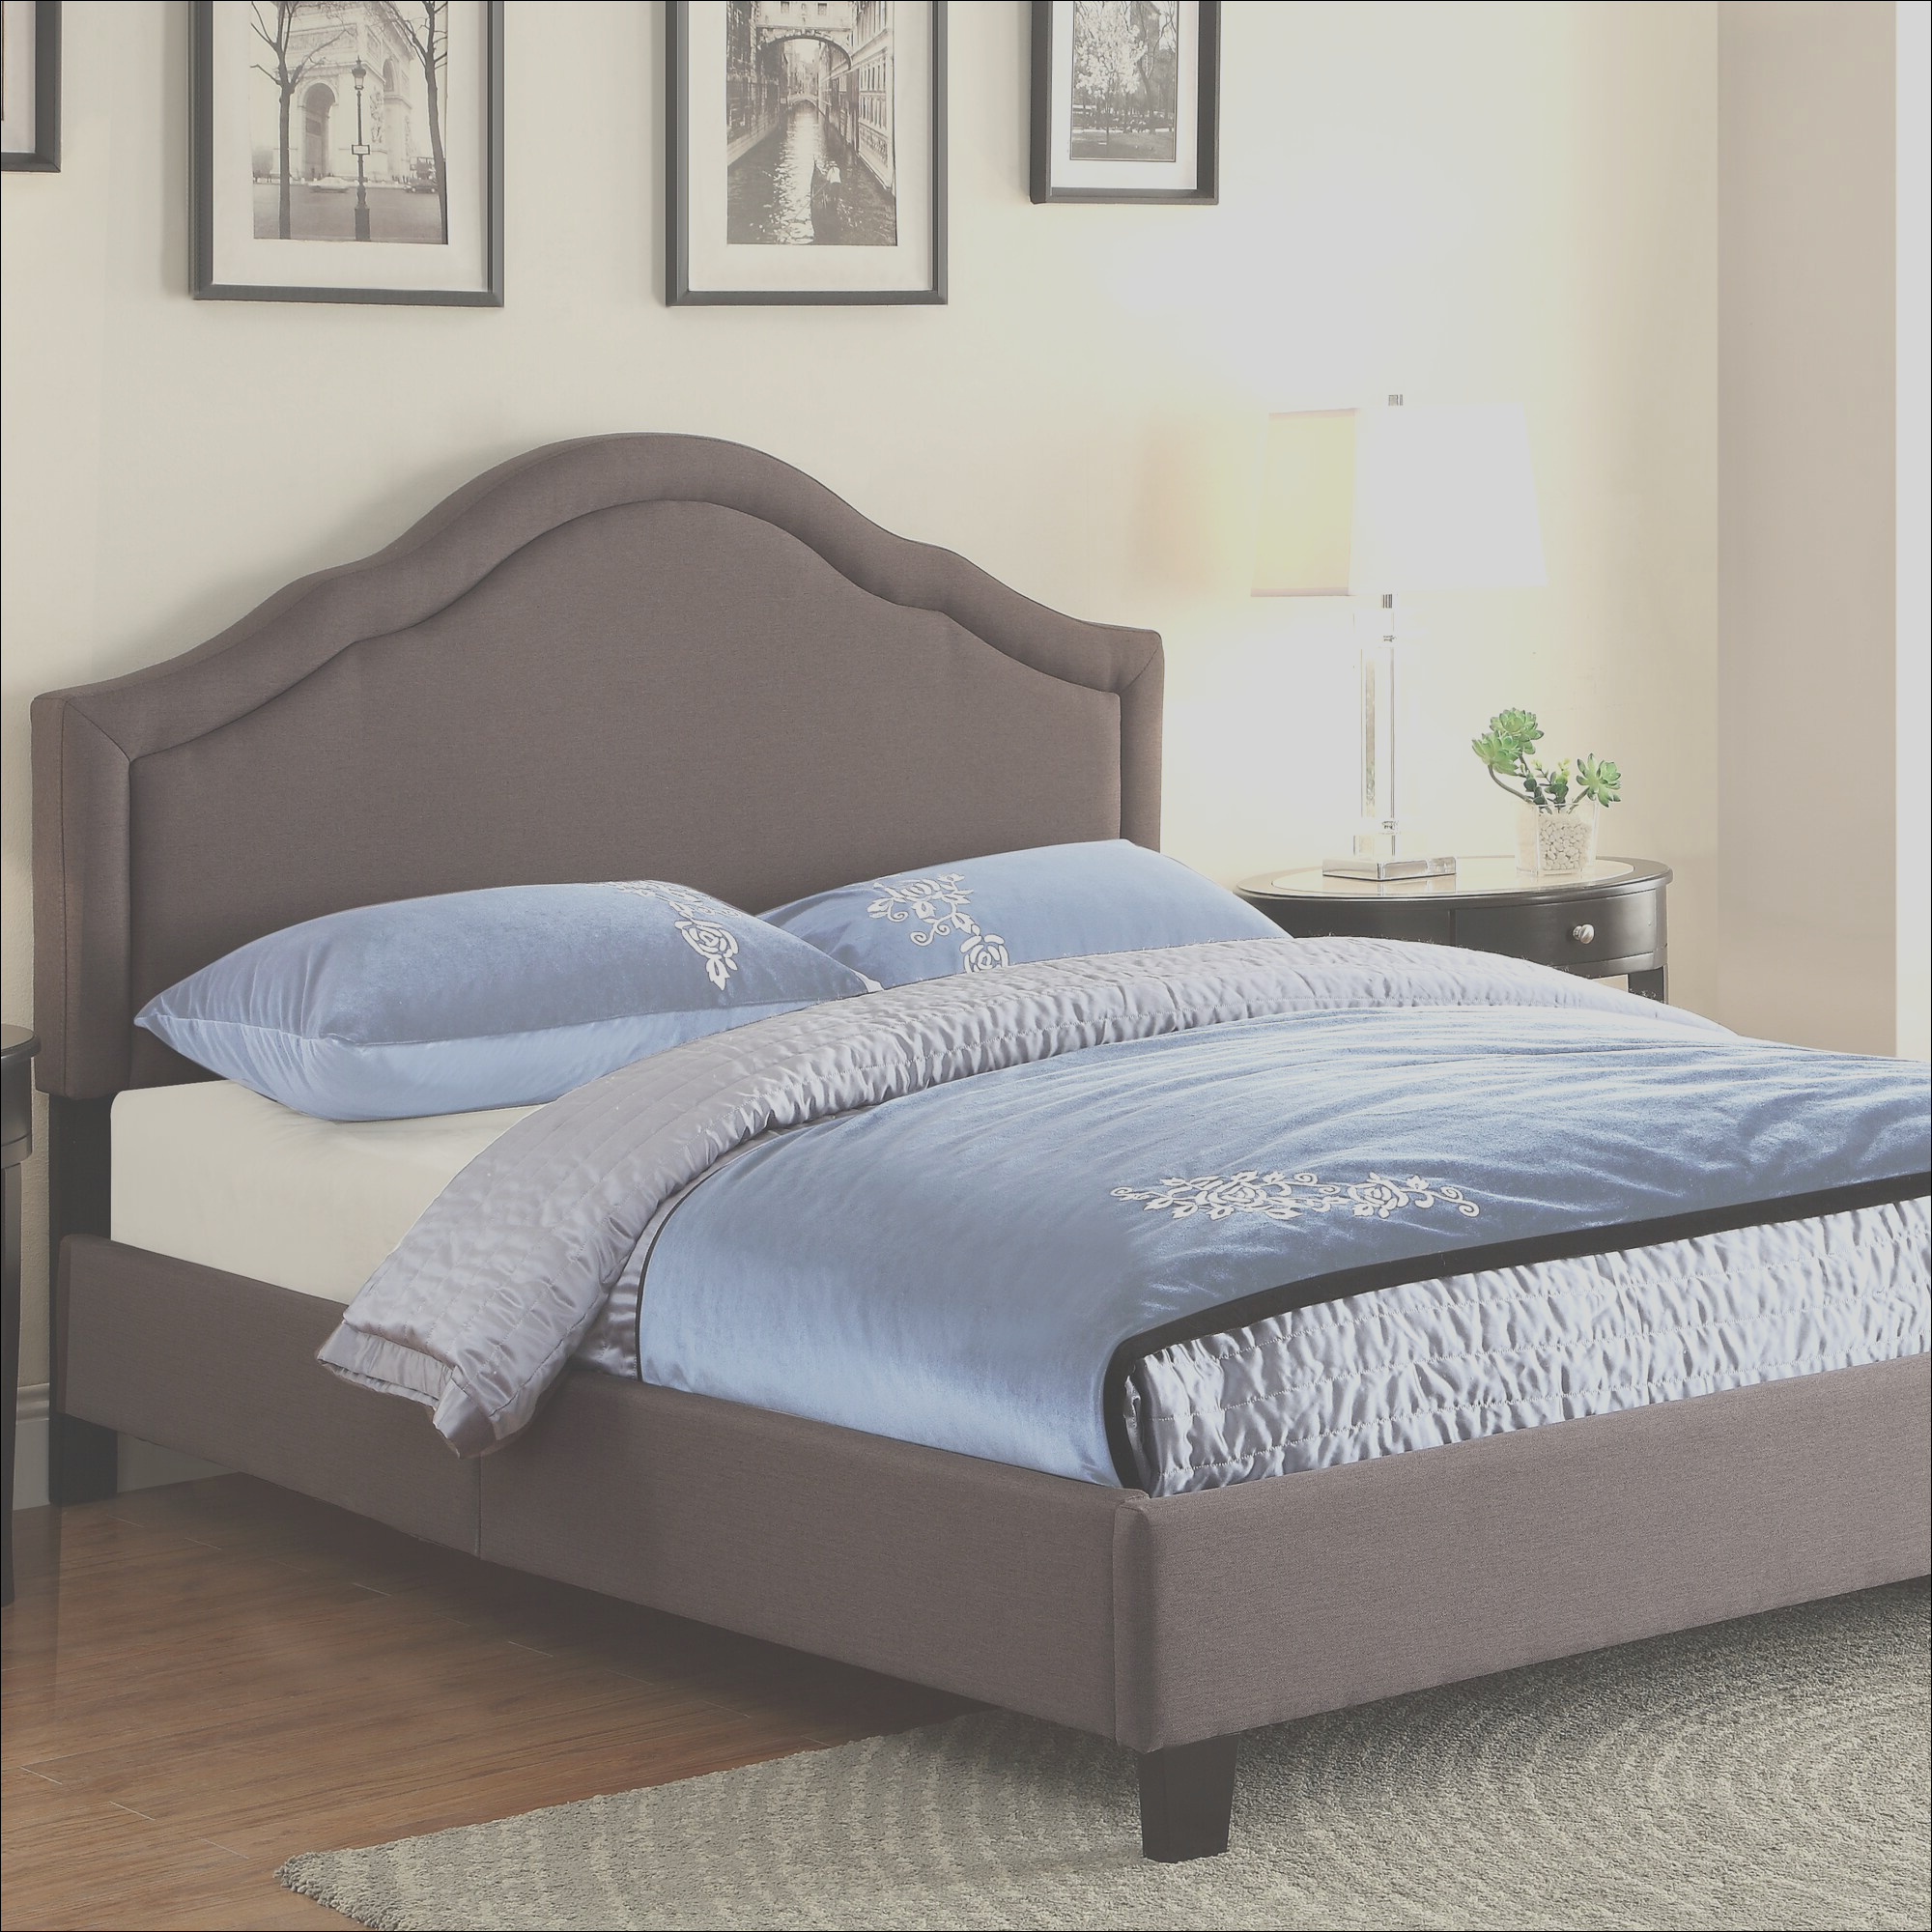 PRI Queen Upholstered Panel Bed PRIH1248